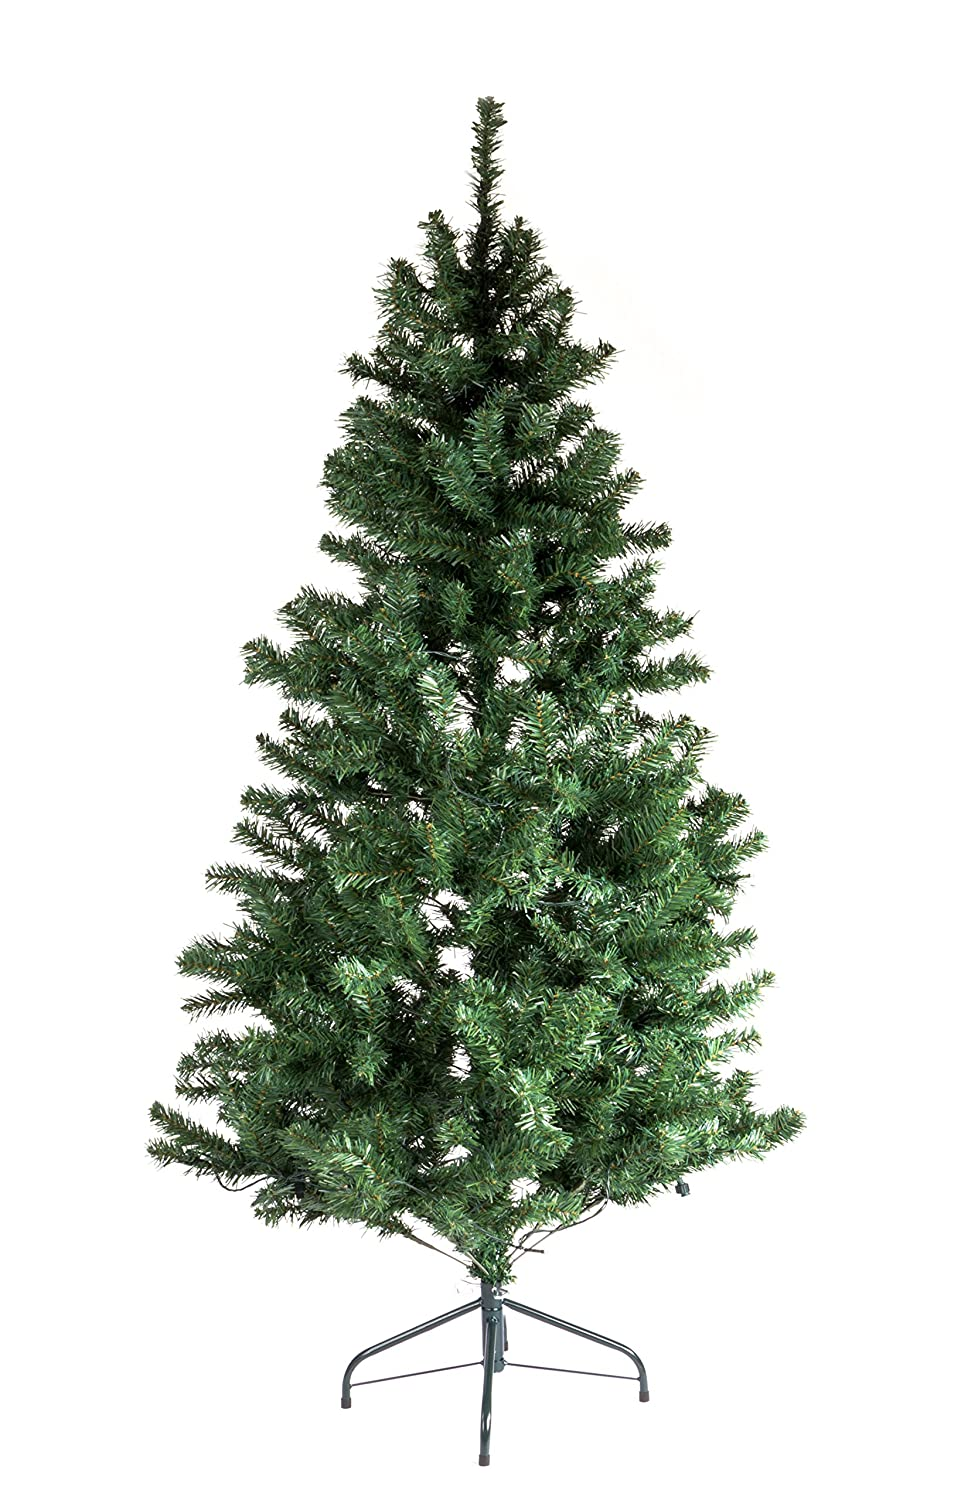 5ft Pre Lit Christmas Trees Artificial Christmas Tree with Warm White LEDs and Metal Stand (5ft - 350 tips / 70 LED) DSL